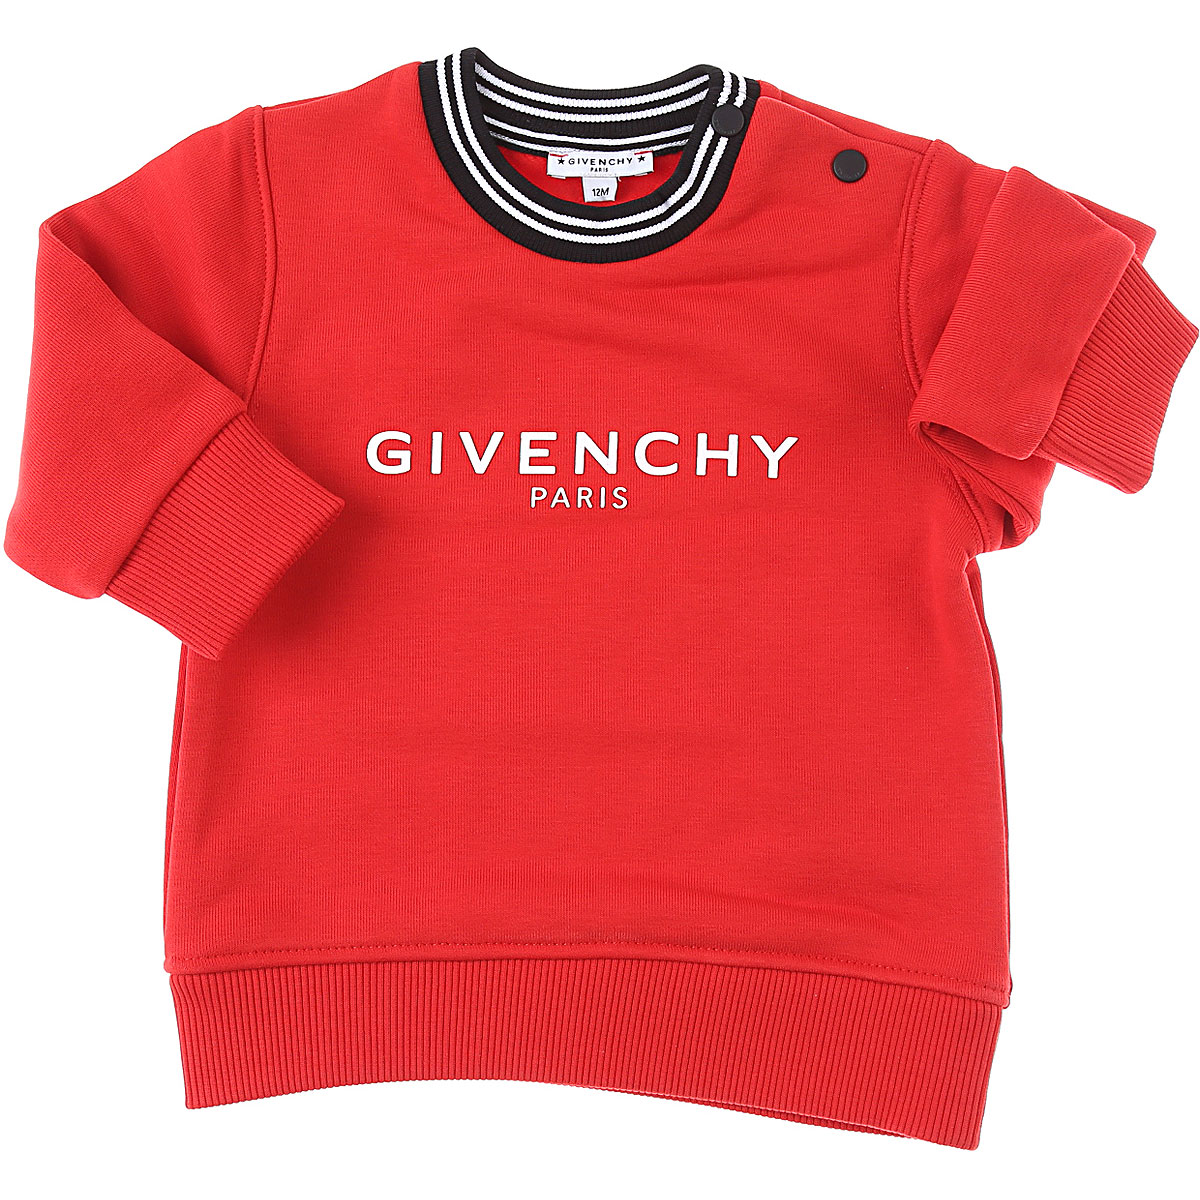 Givenchy Baby Sweatshirts & Hoodies for Boys On Sale, Red, Cotton, 2019, 18M 9M